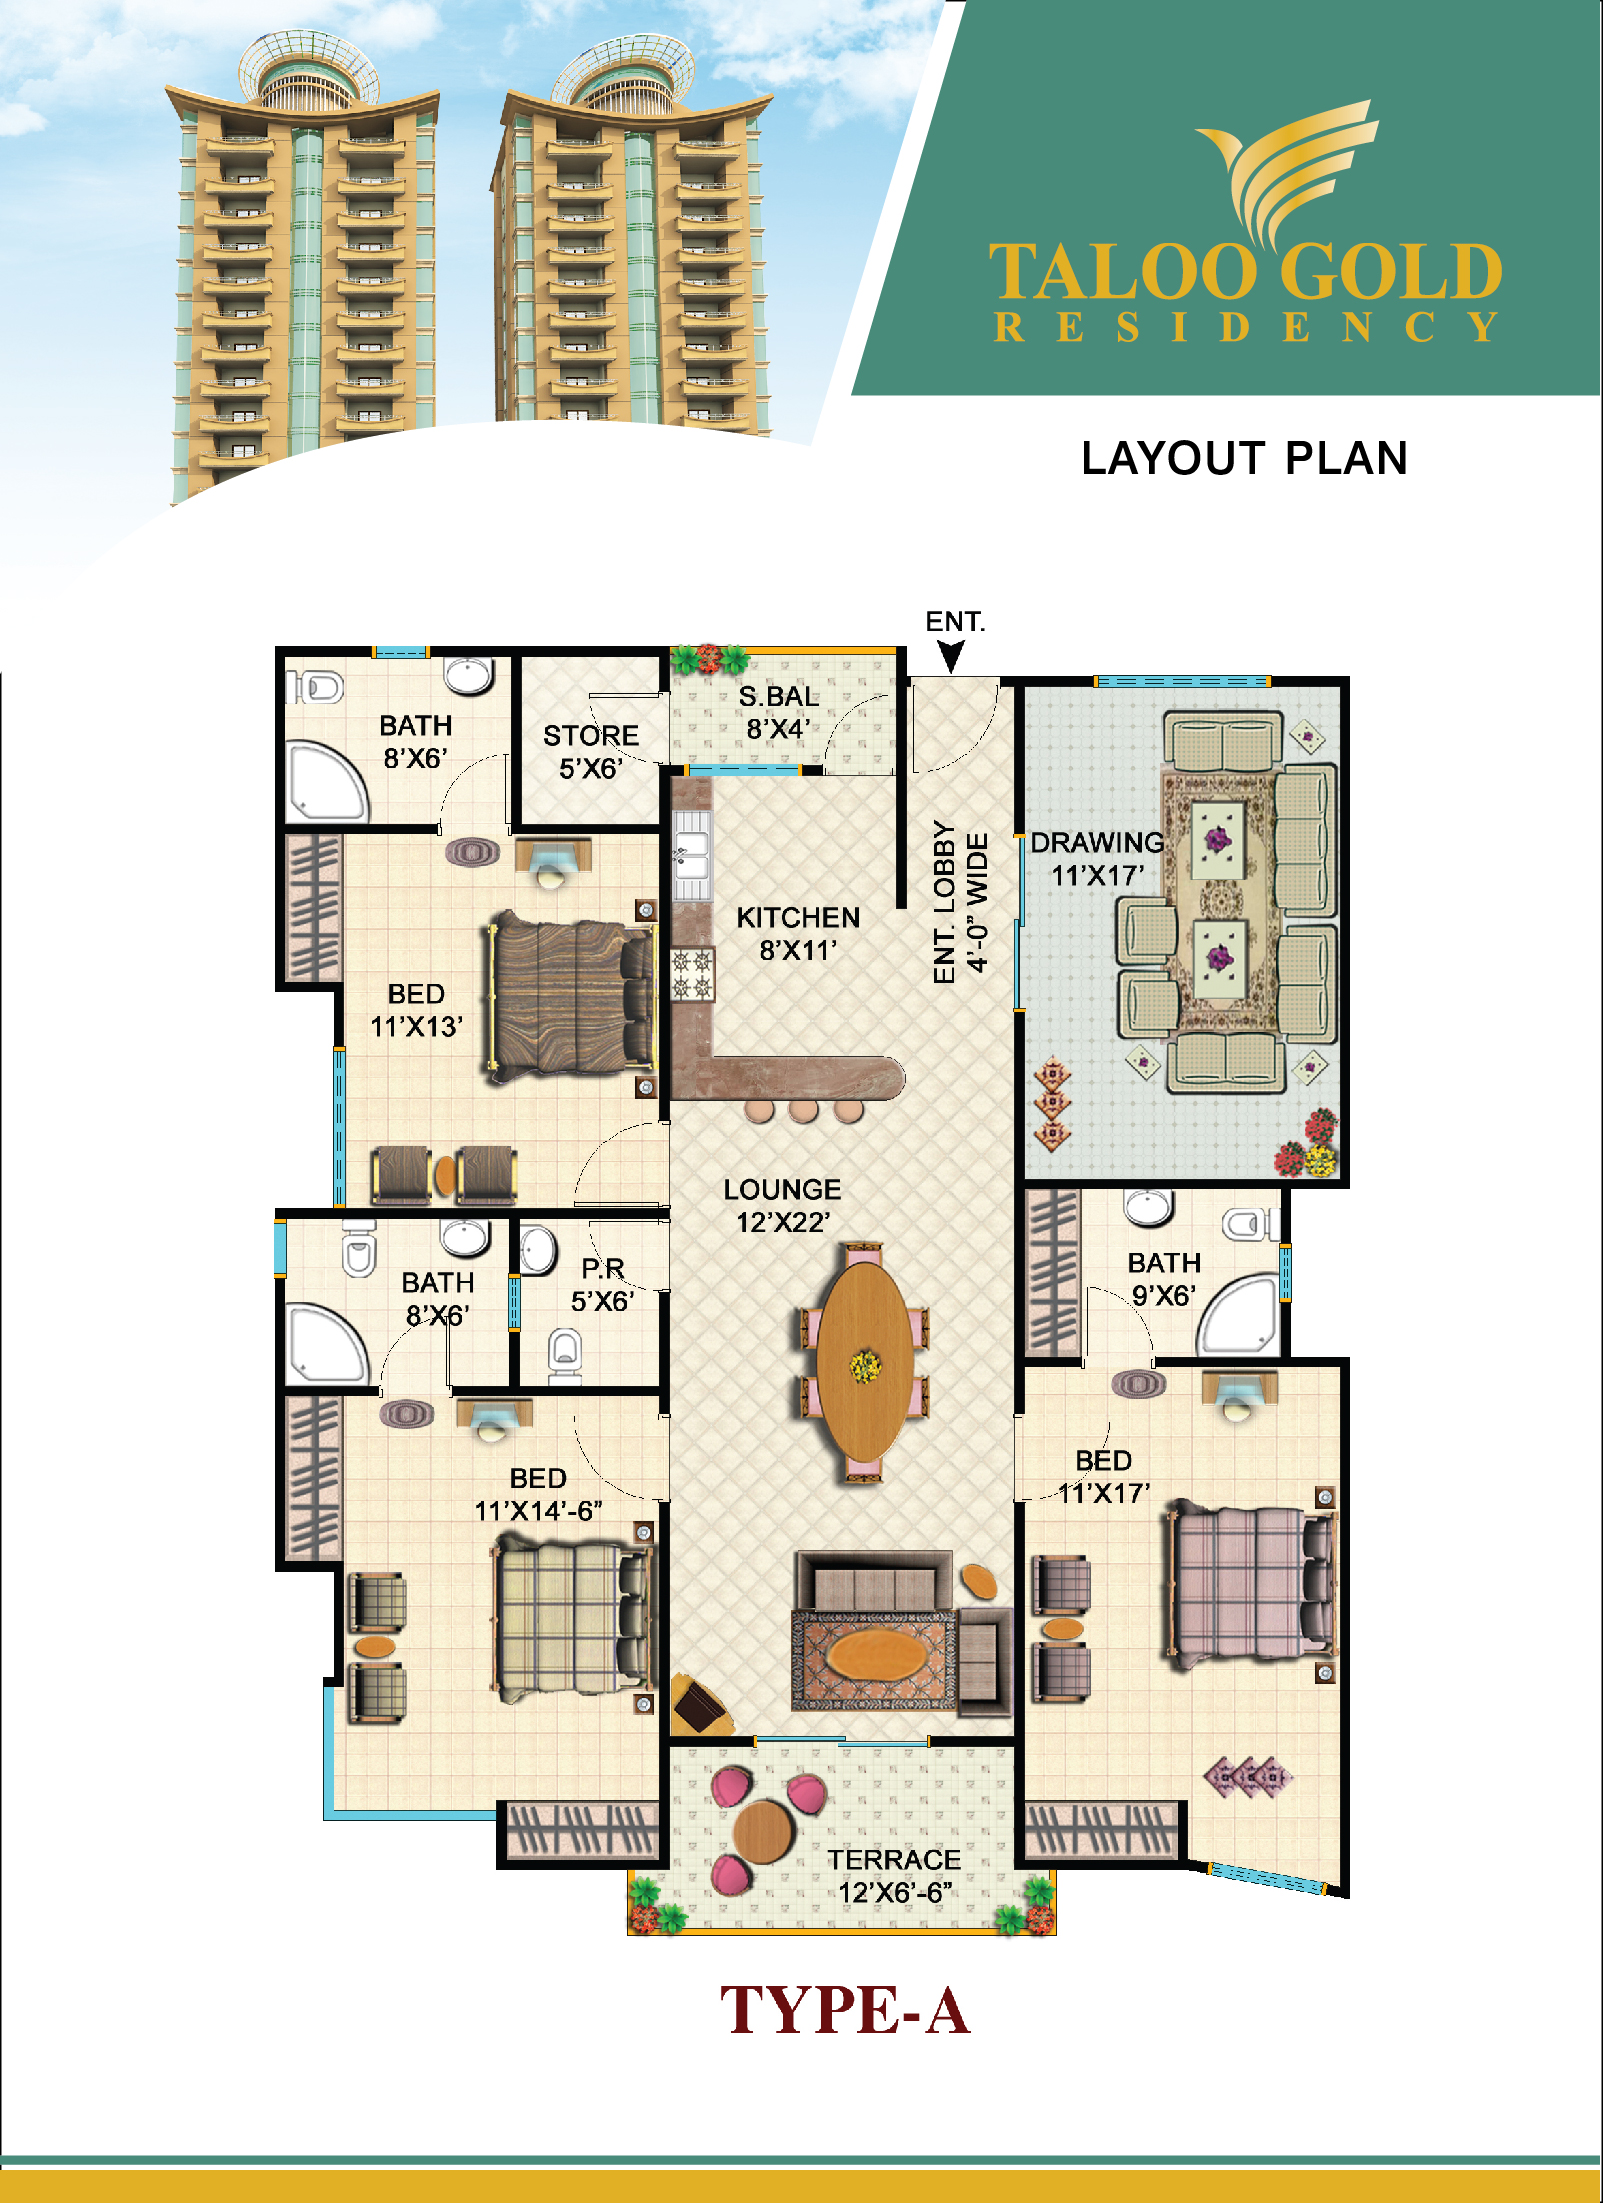 Taloo-Gold-Residency-Pay-Sch-5-ROOMS-Type-A-30-3-2017-02